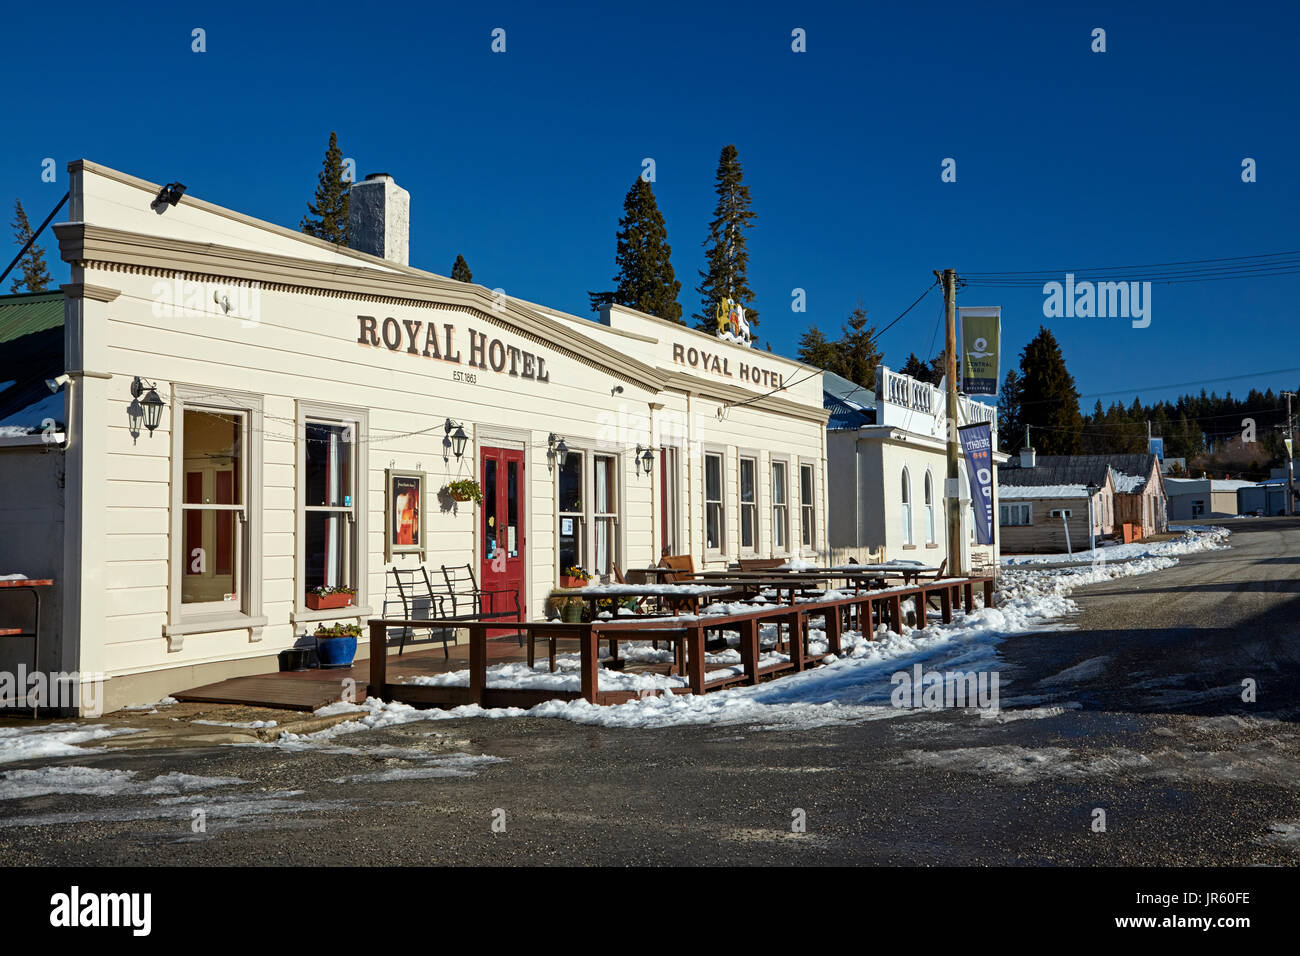 Royal Hotel (1878), and Maniototo County Council Offices (1878), in winter, Naseby, Maniototo, Central Otago, South Island, New Zealand - Stock Image